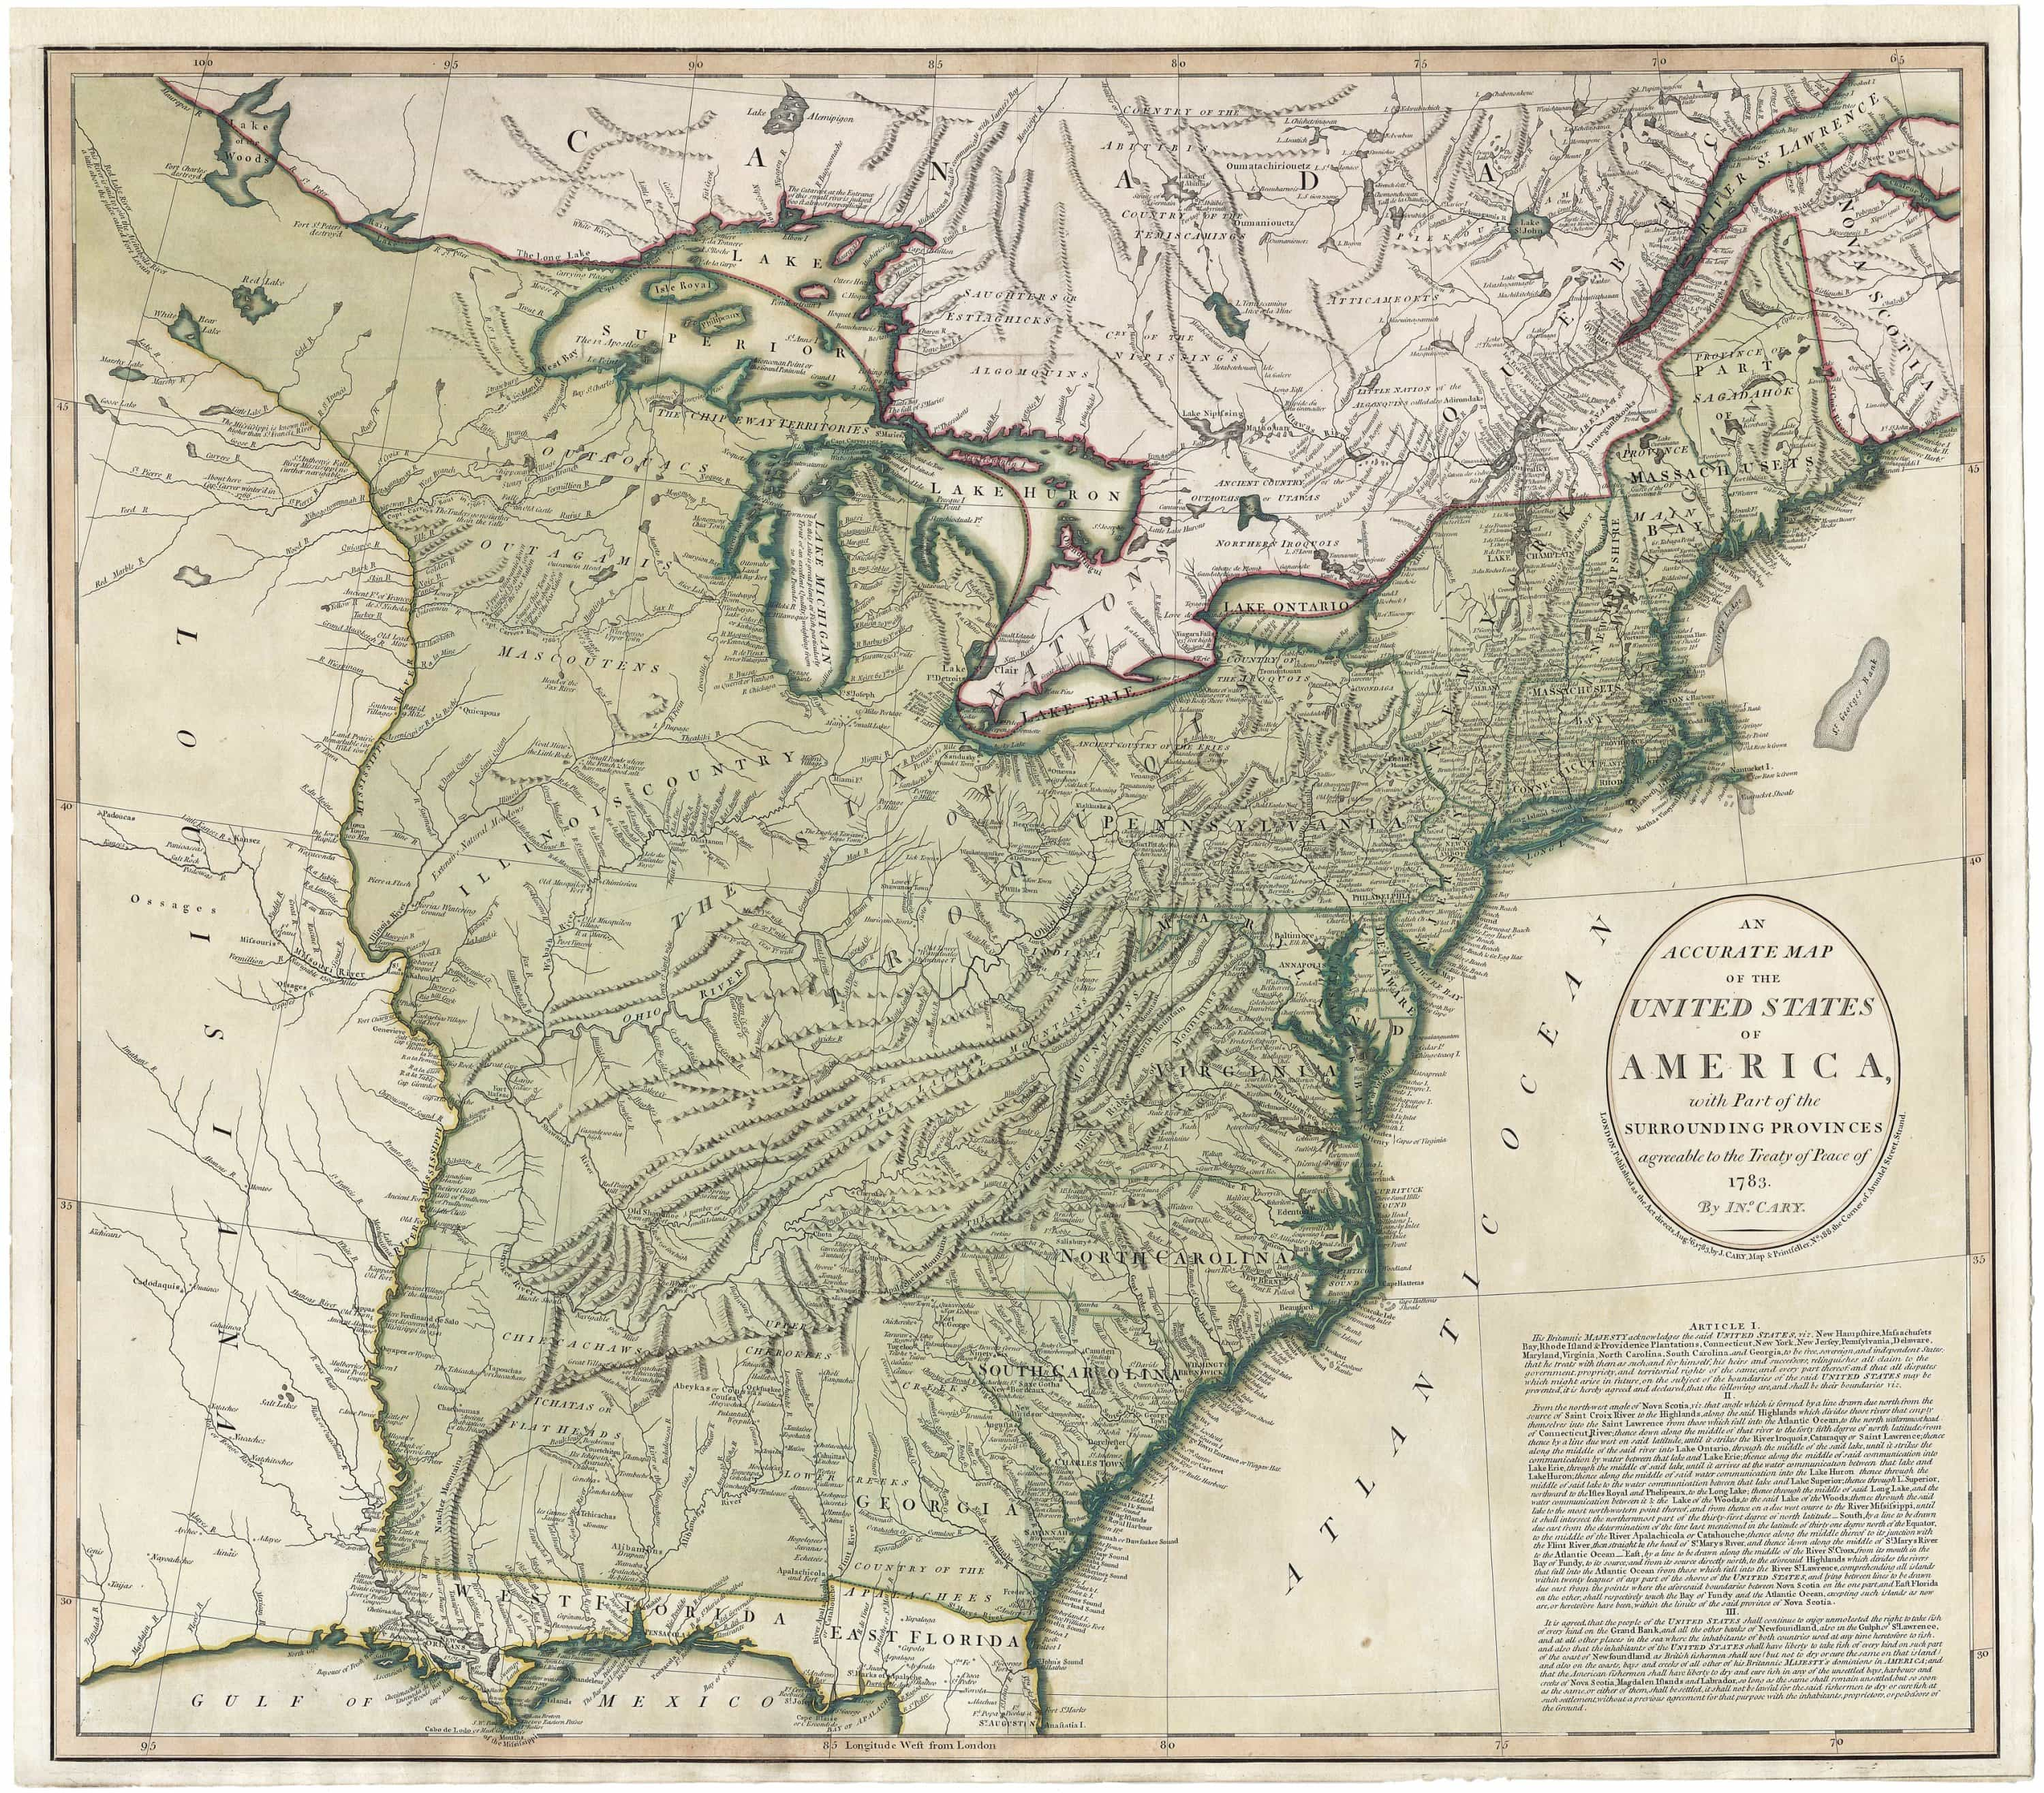 Books Antique Geography Rare $1,000 to $2,000